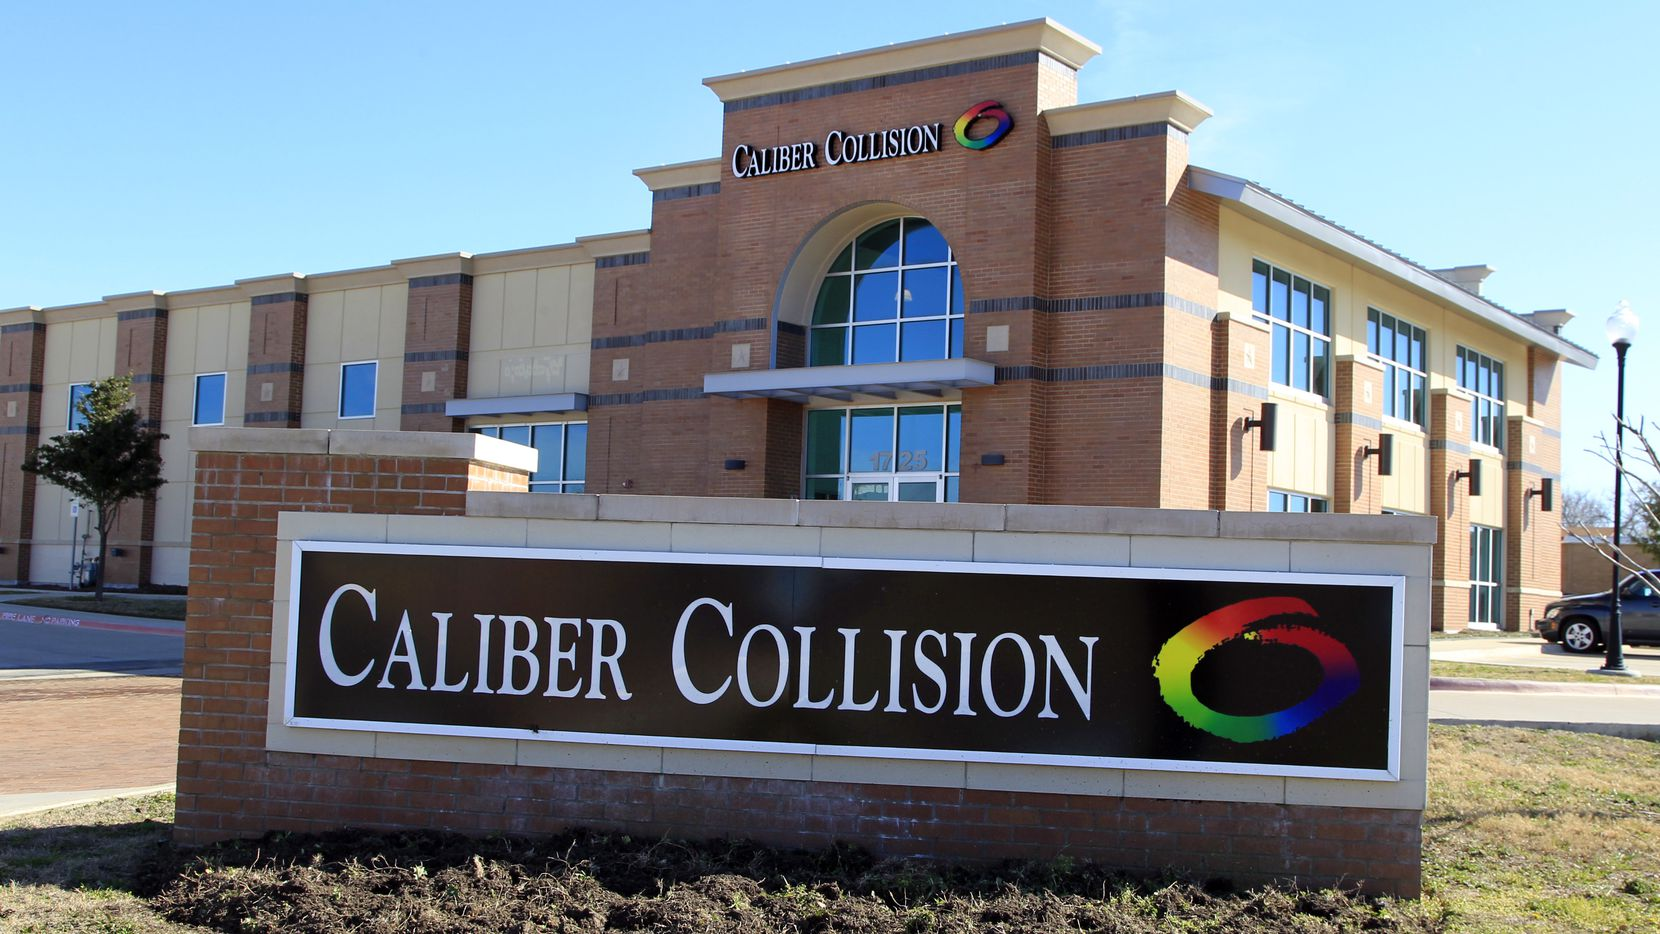 Caliber Collision Center recently opened the company's newest location in Keller. Shot on Friday, January 27, 2012. (David Woo/The Dallas Morning News) 02072012xBIZ